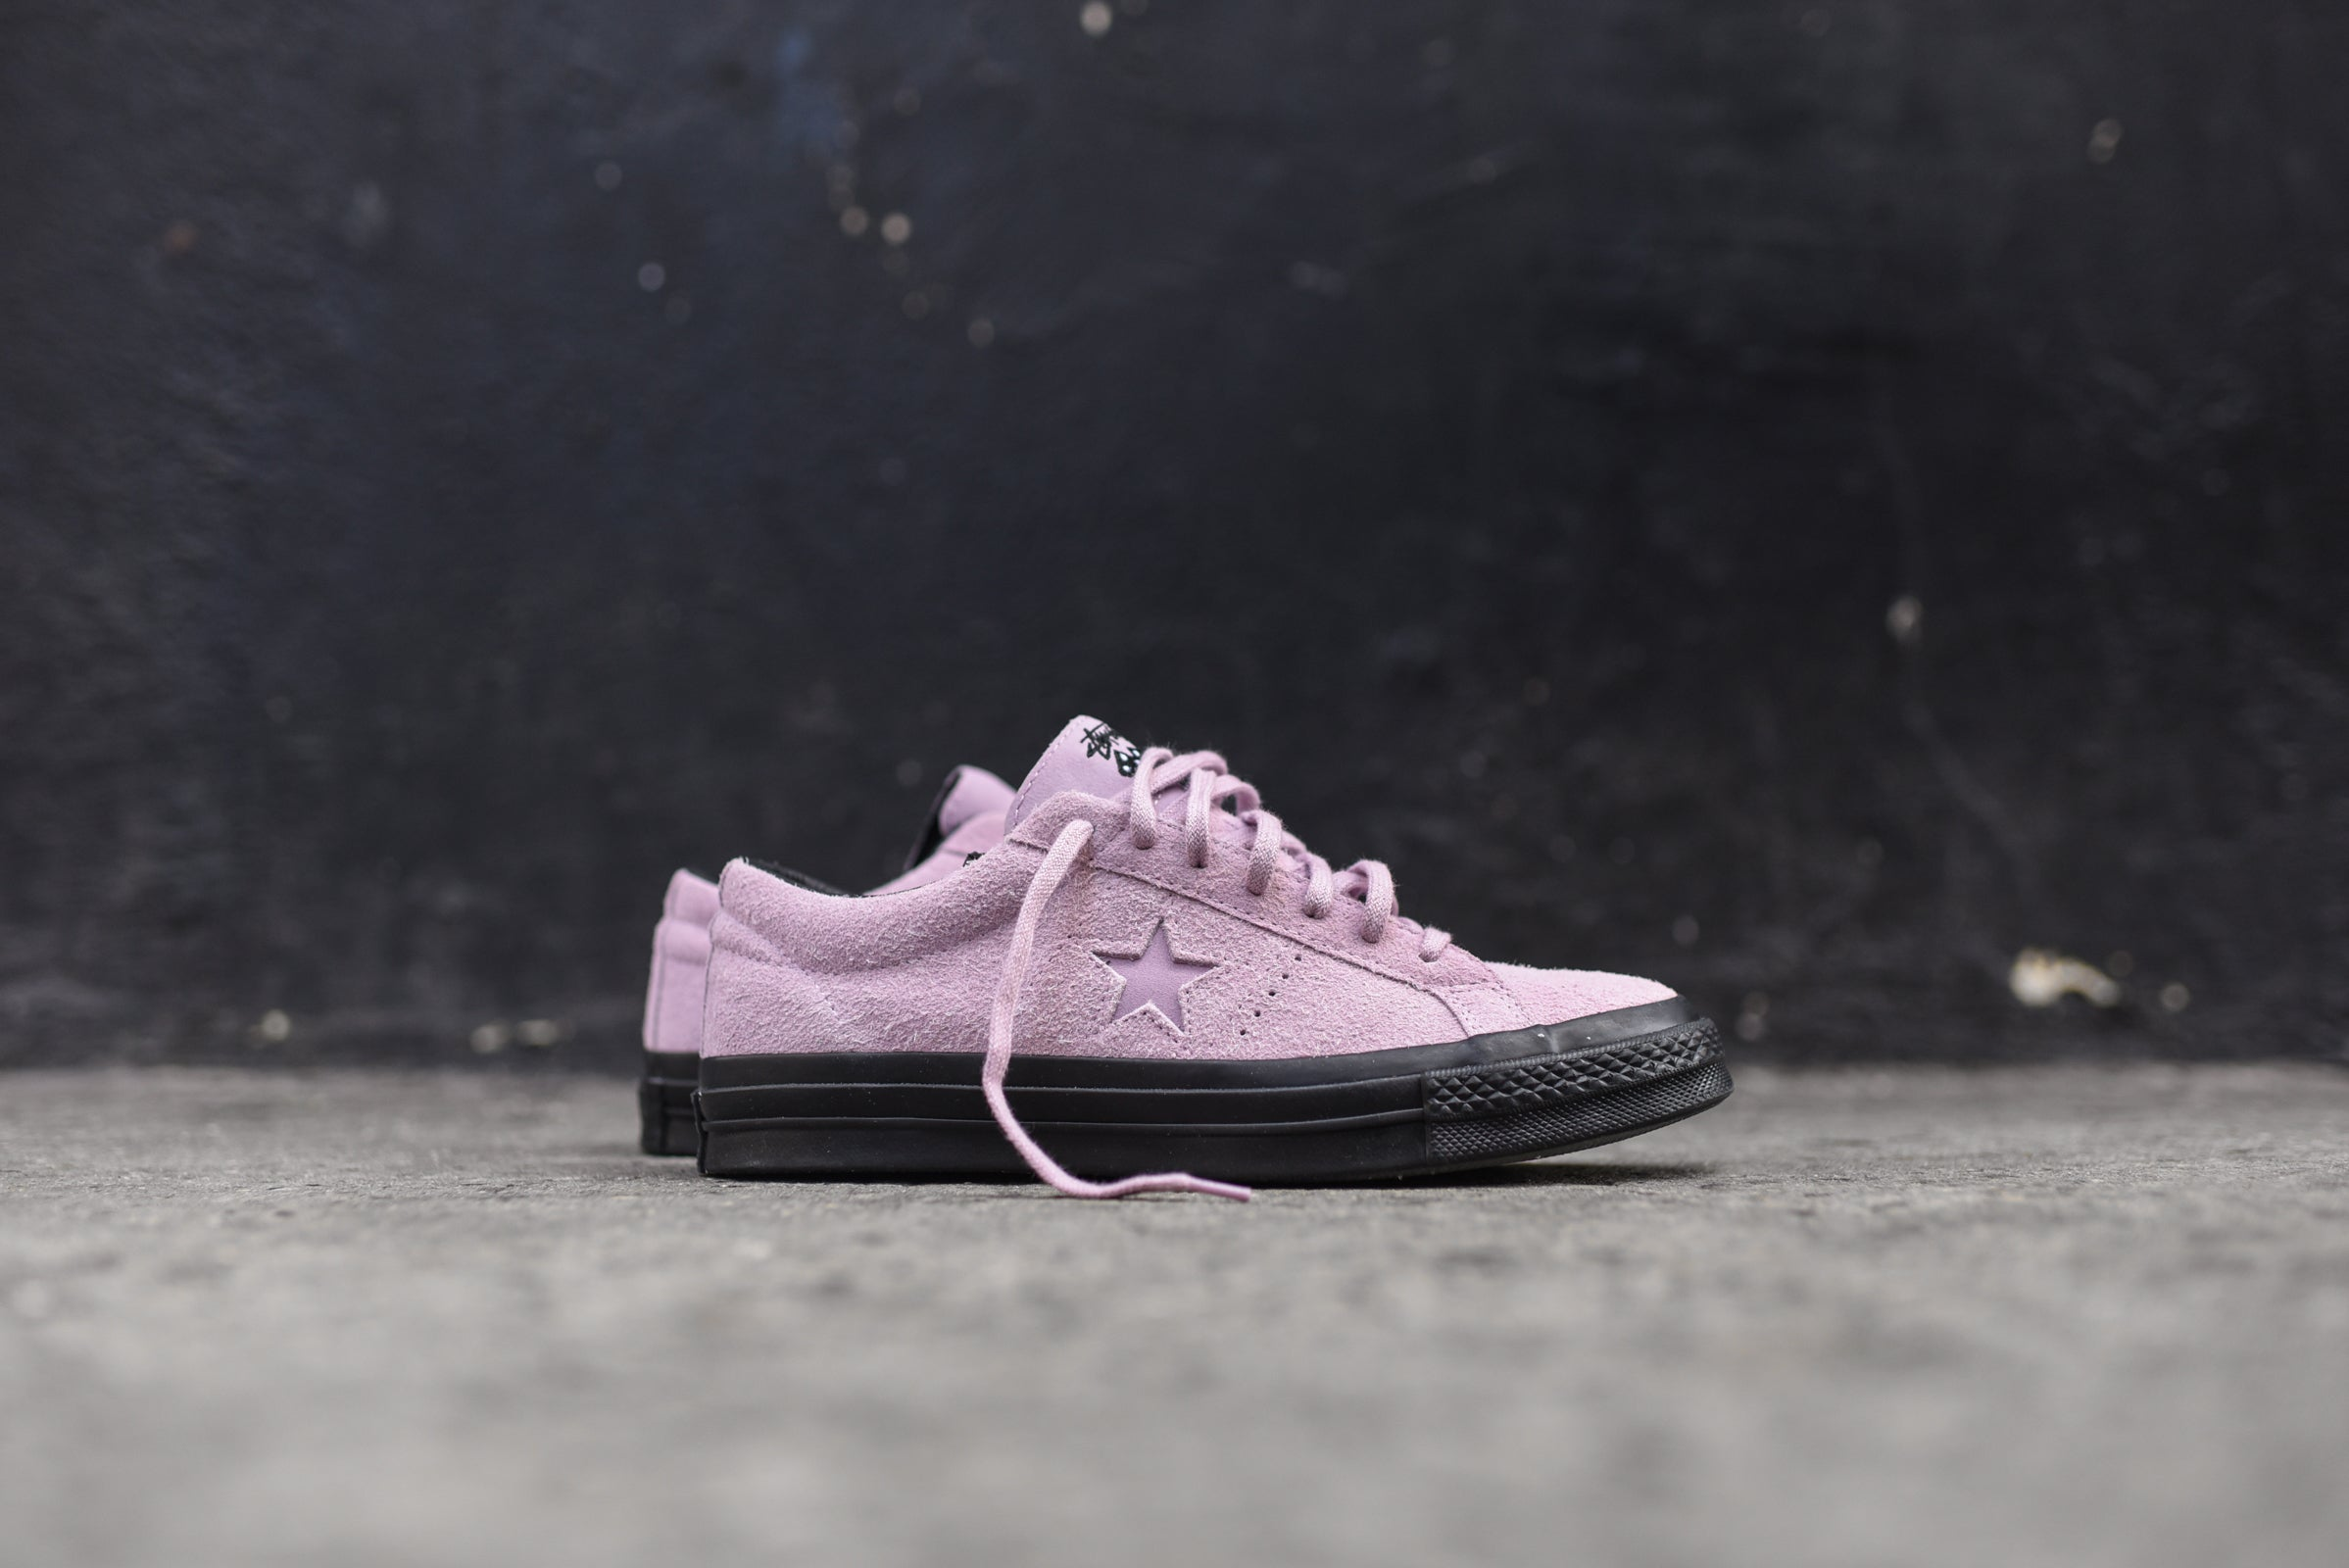 090d0a1f87276e Converse x Stussy One Star 74 Ox Pack. December 02